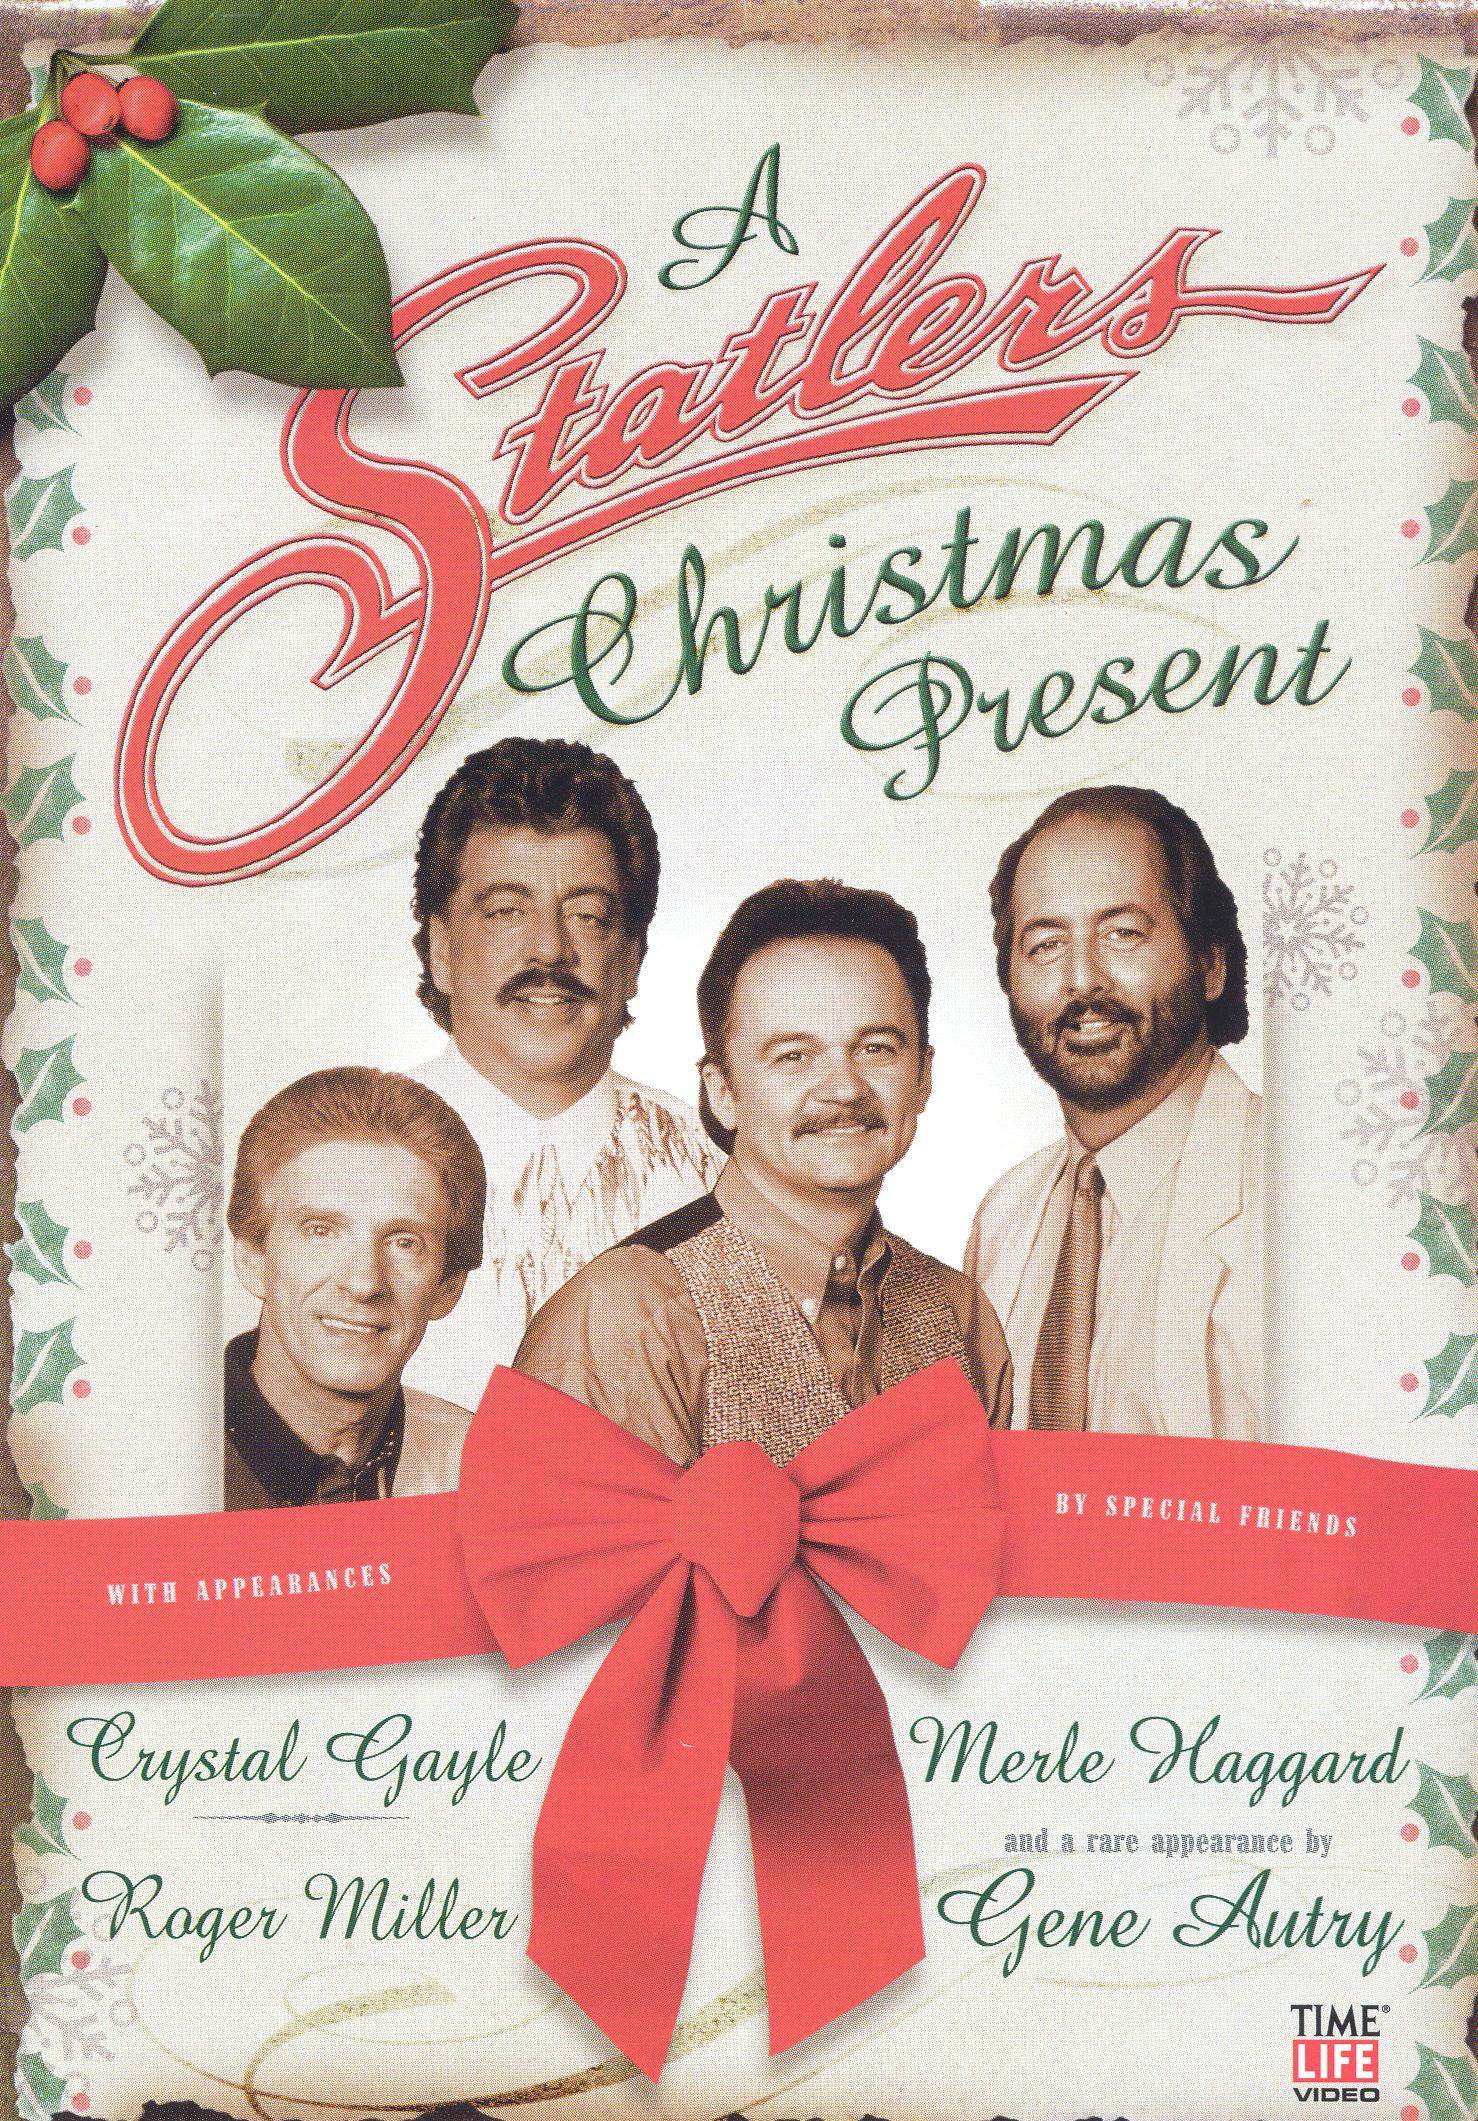 The Statler Brothers: A Statlers Christmas Present